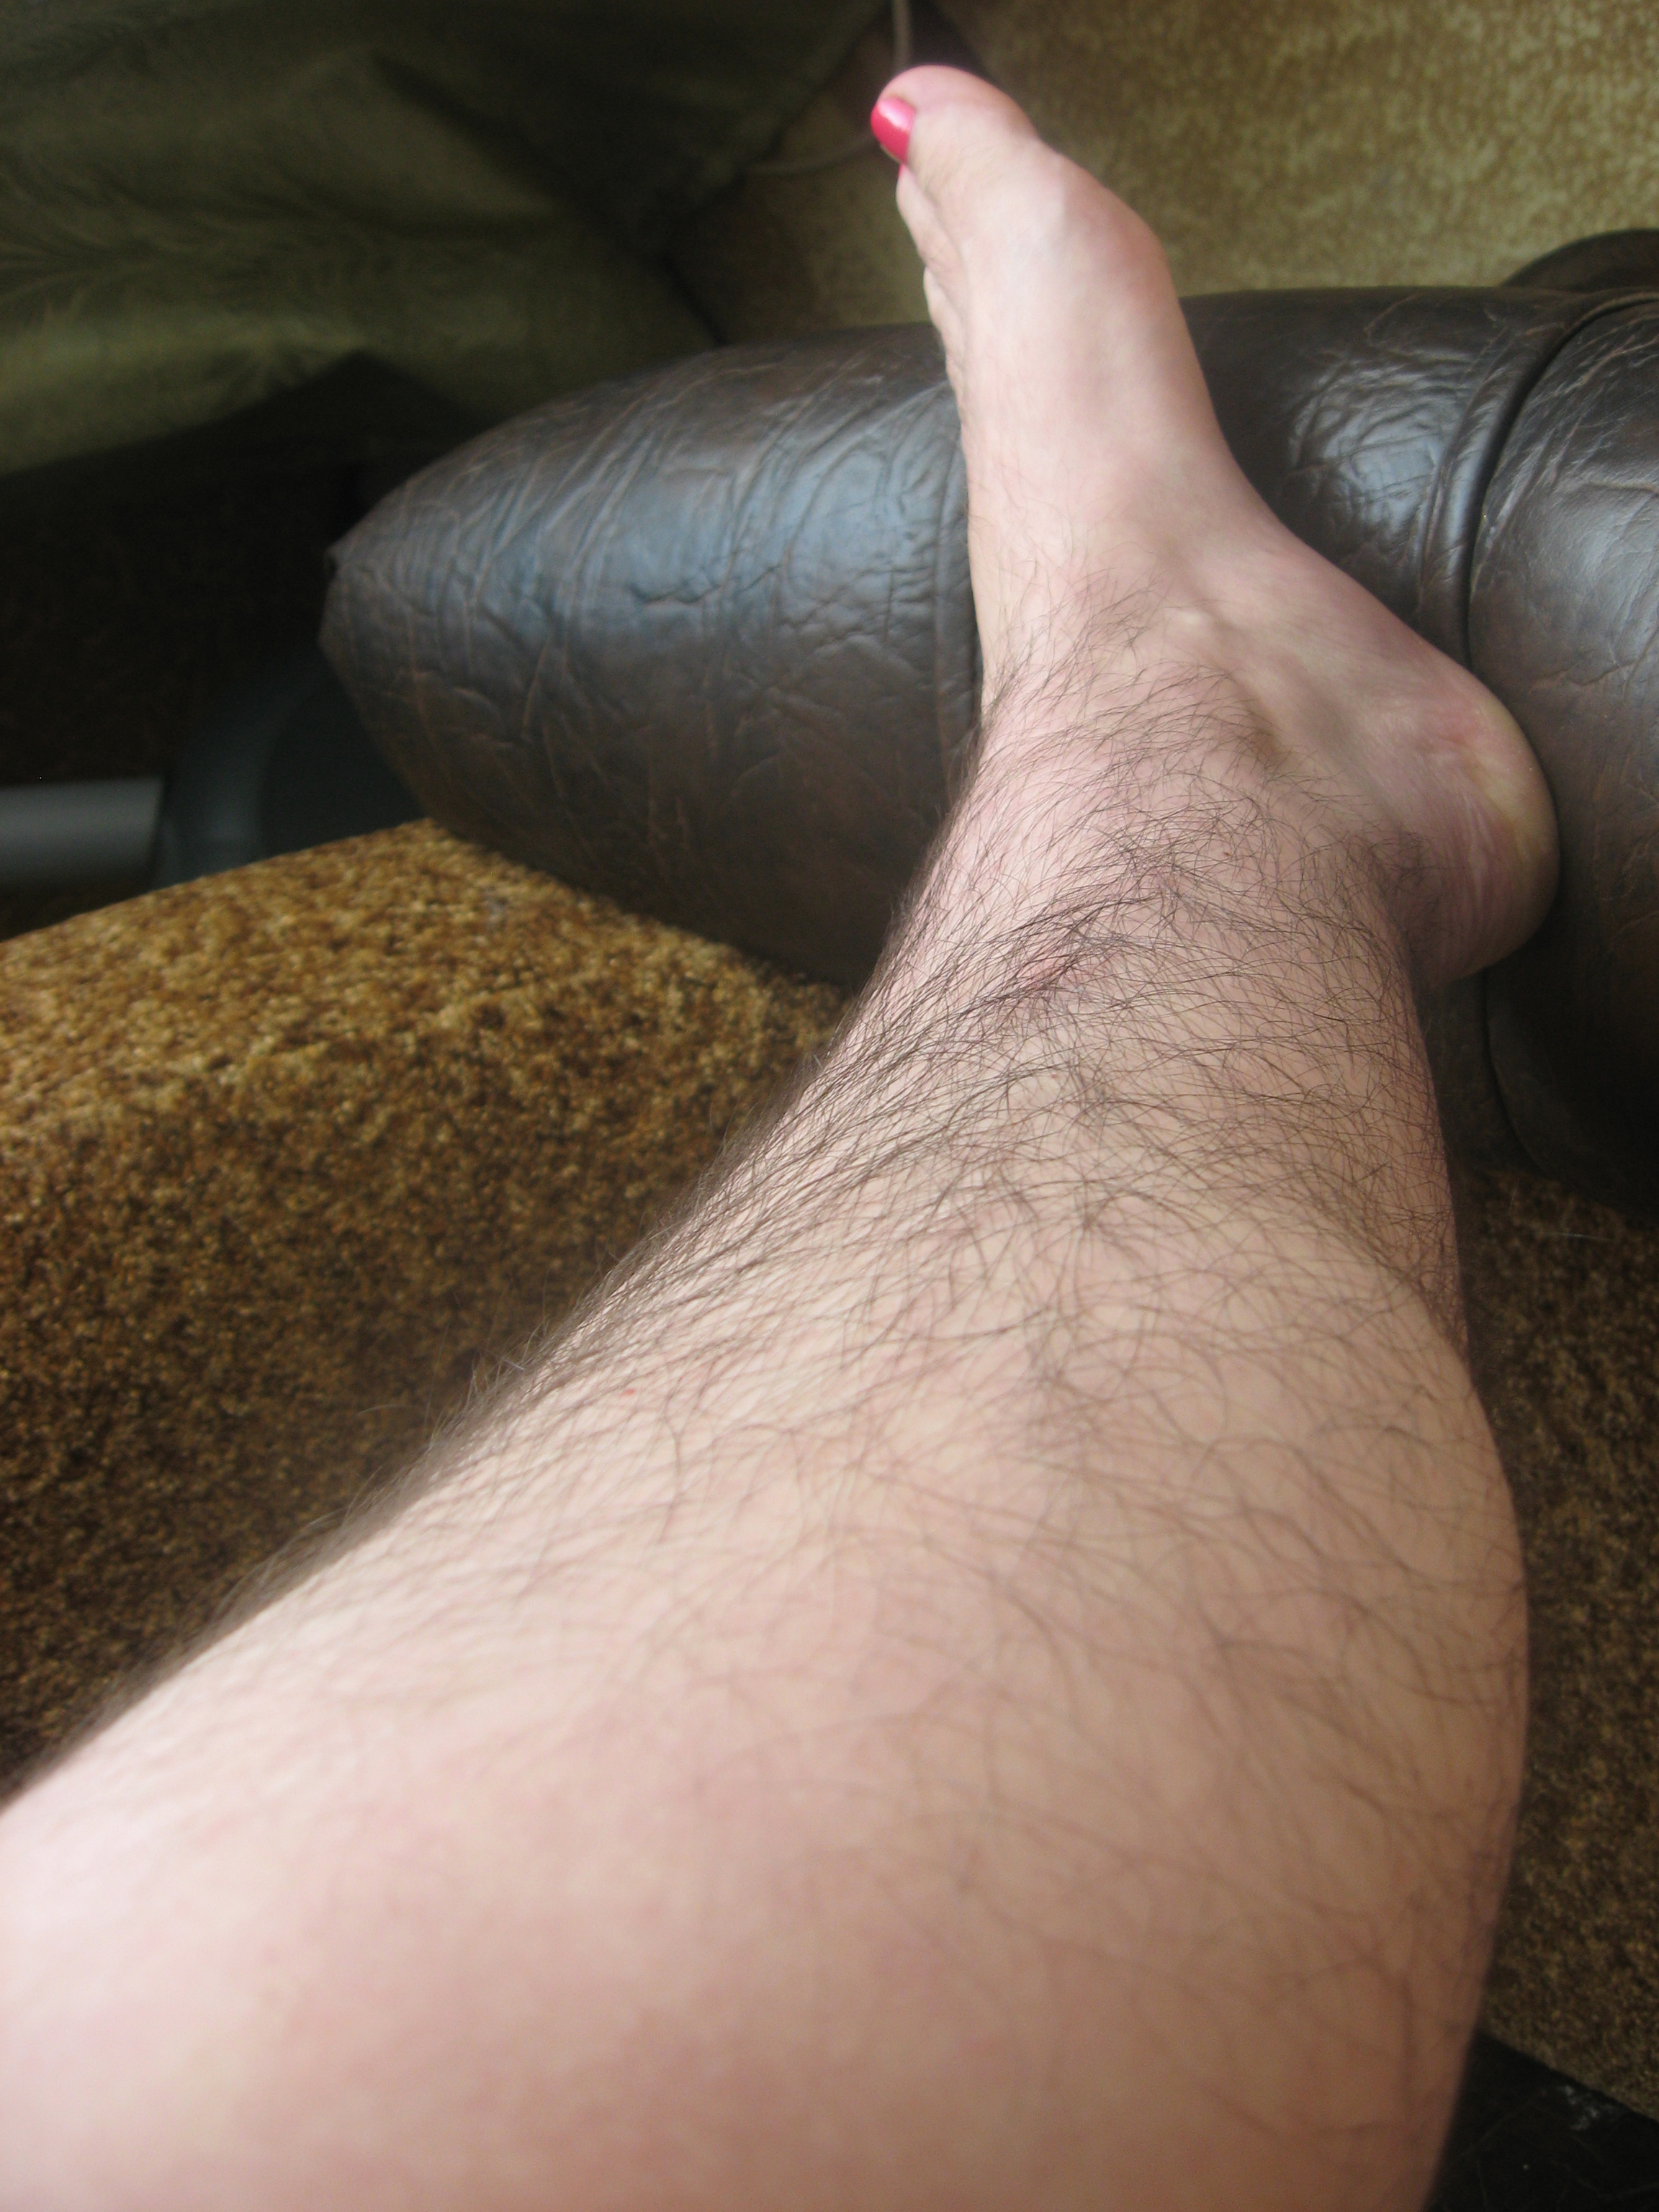 Hairy Legs Photos 37